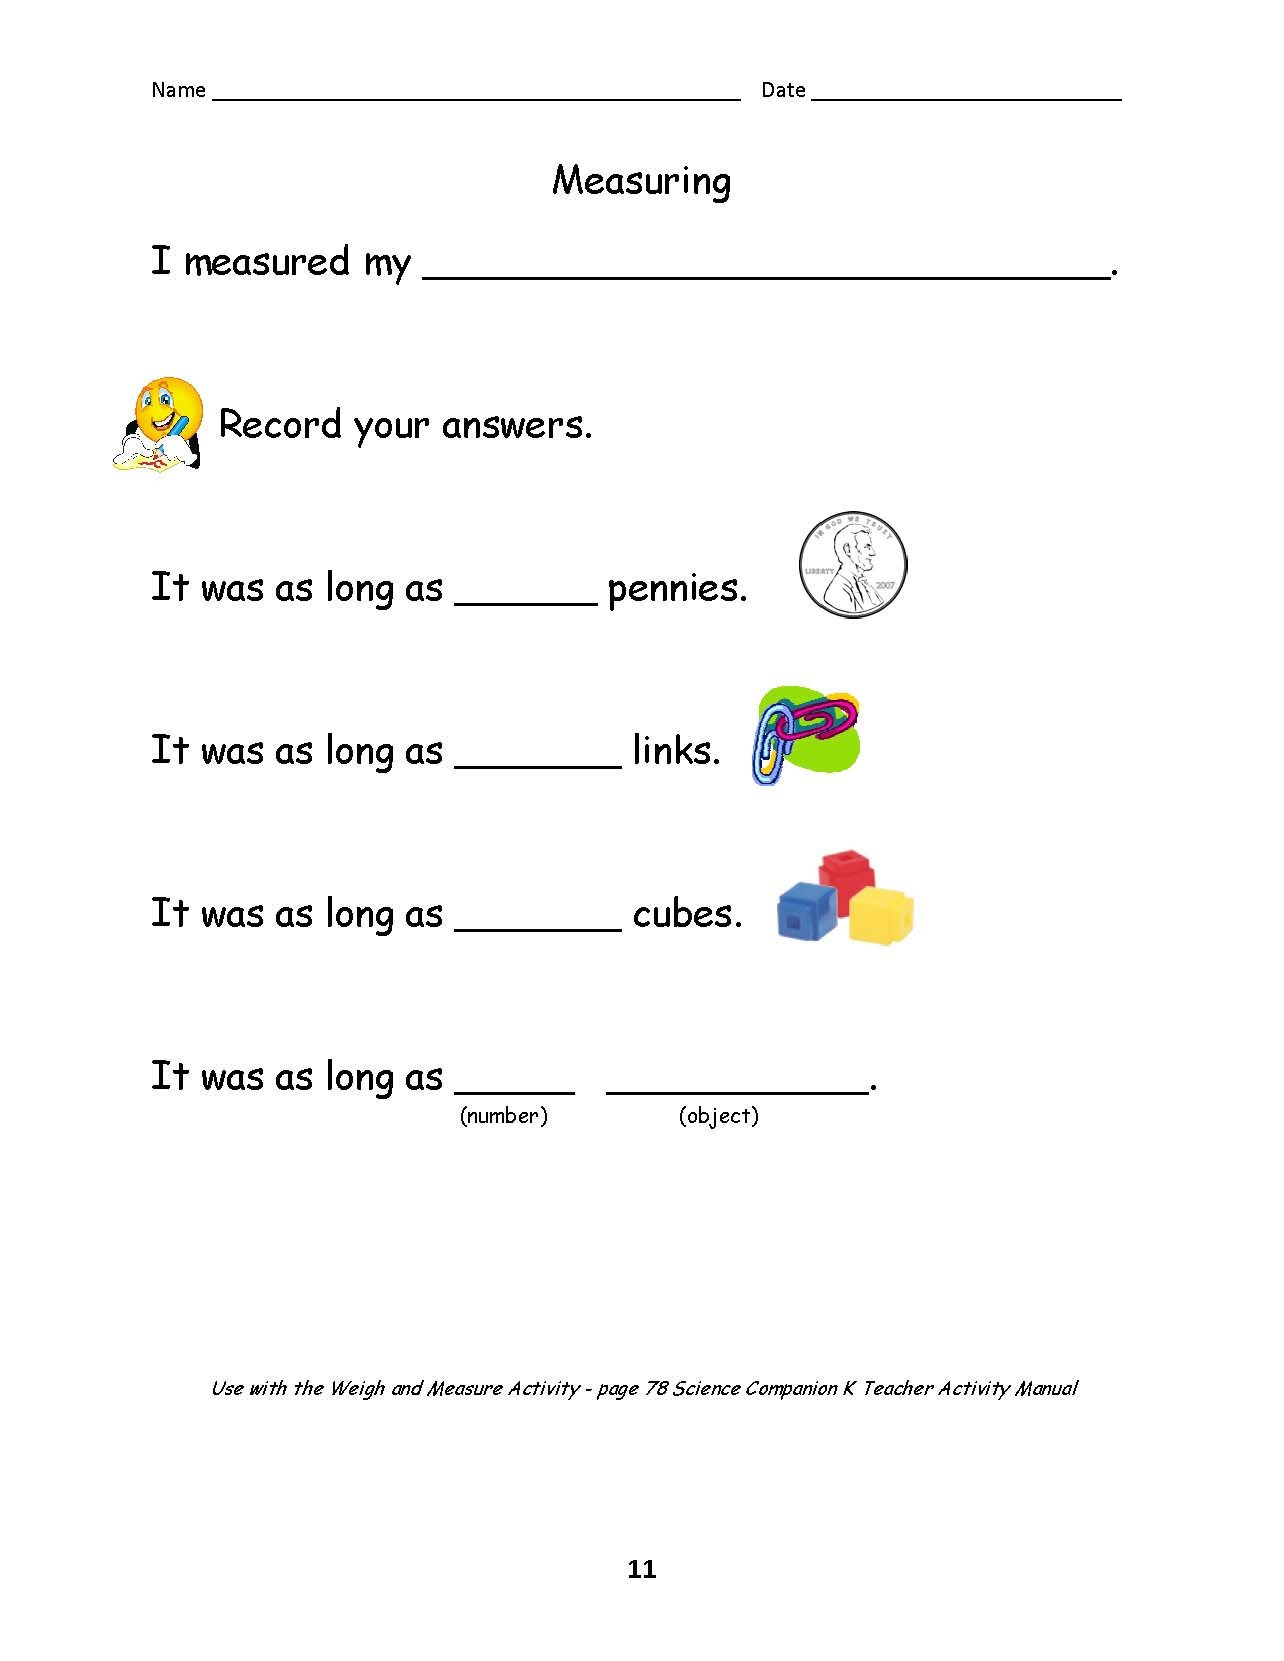 Science And Children Online Connections As Well As Science Instruments And Measurement Worksheet Answers